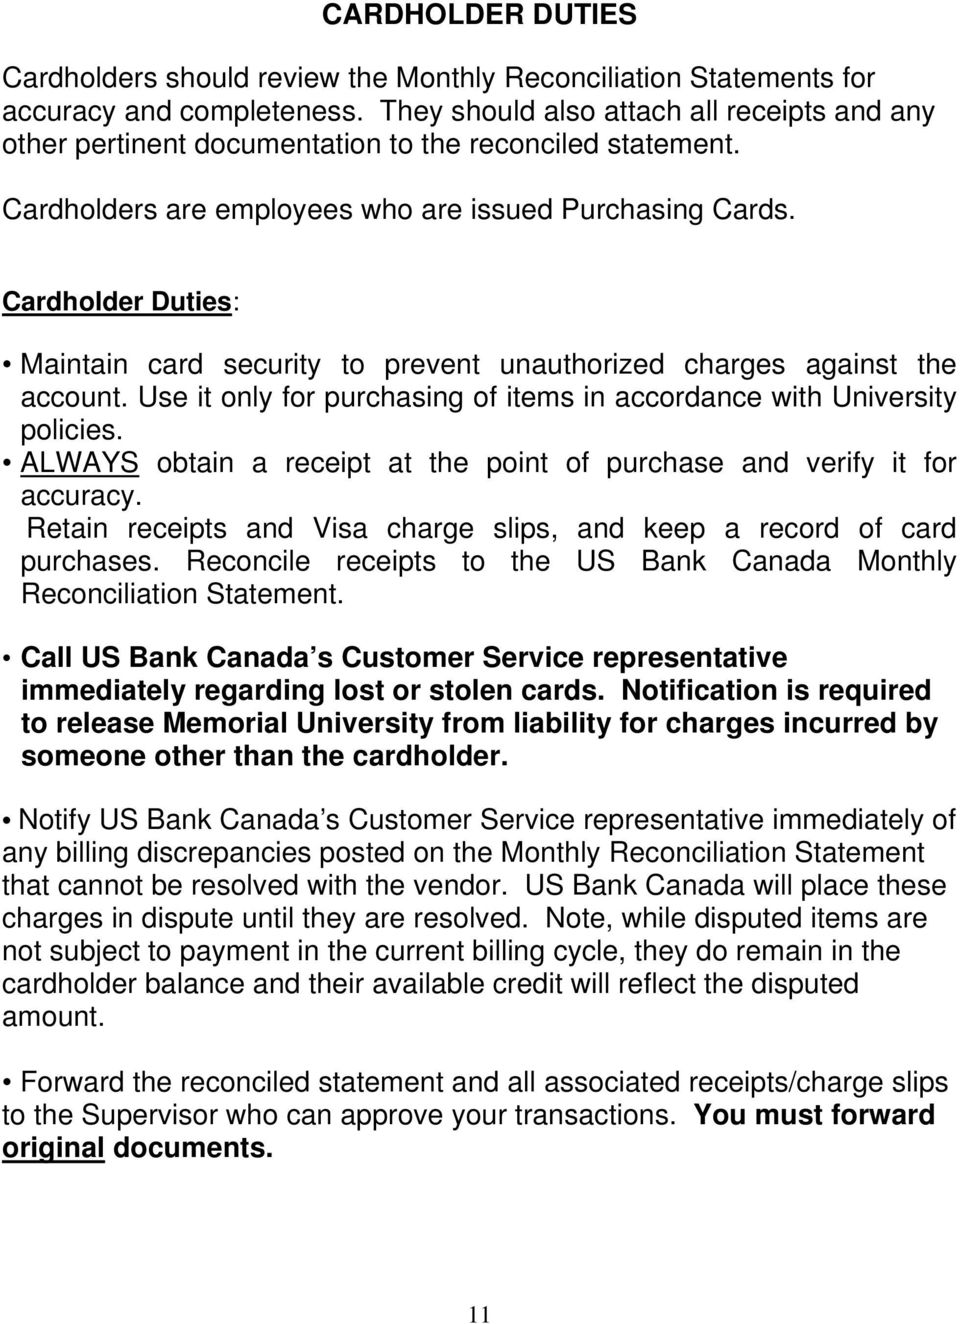 Cardholder Duties: Maintain card security to prevent unauthorized charges against the account. Use it only for purchasing of items in accordance with University policies.